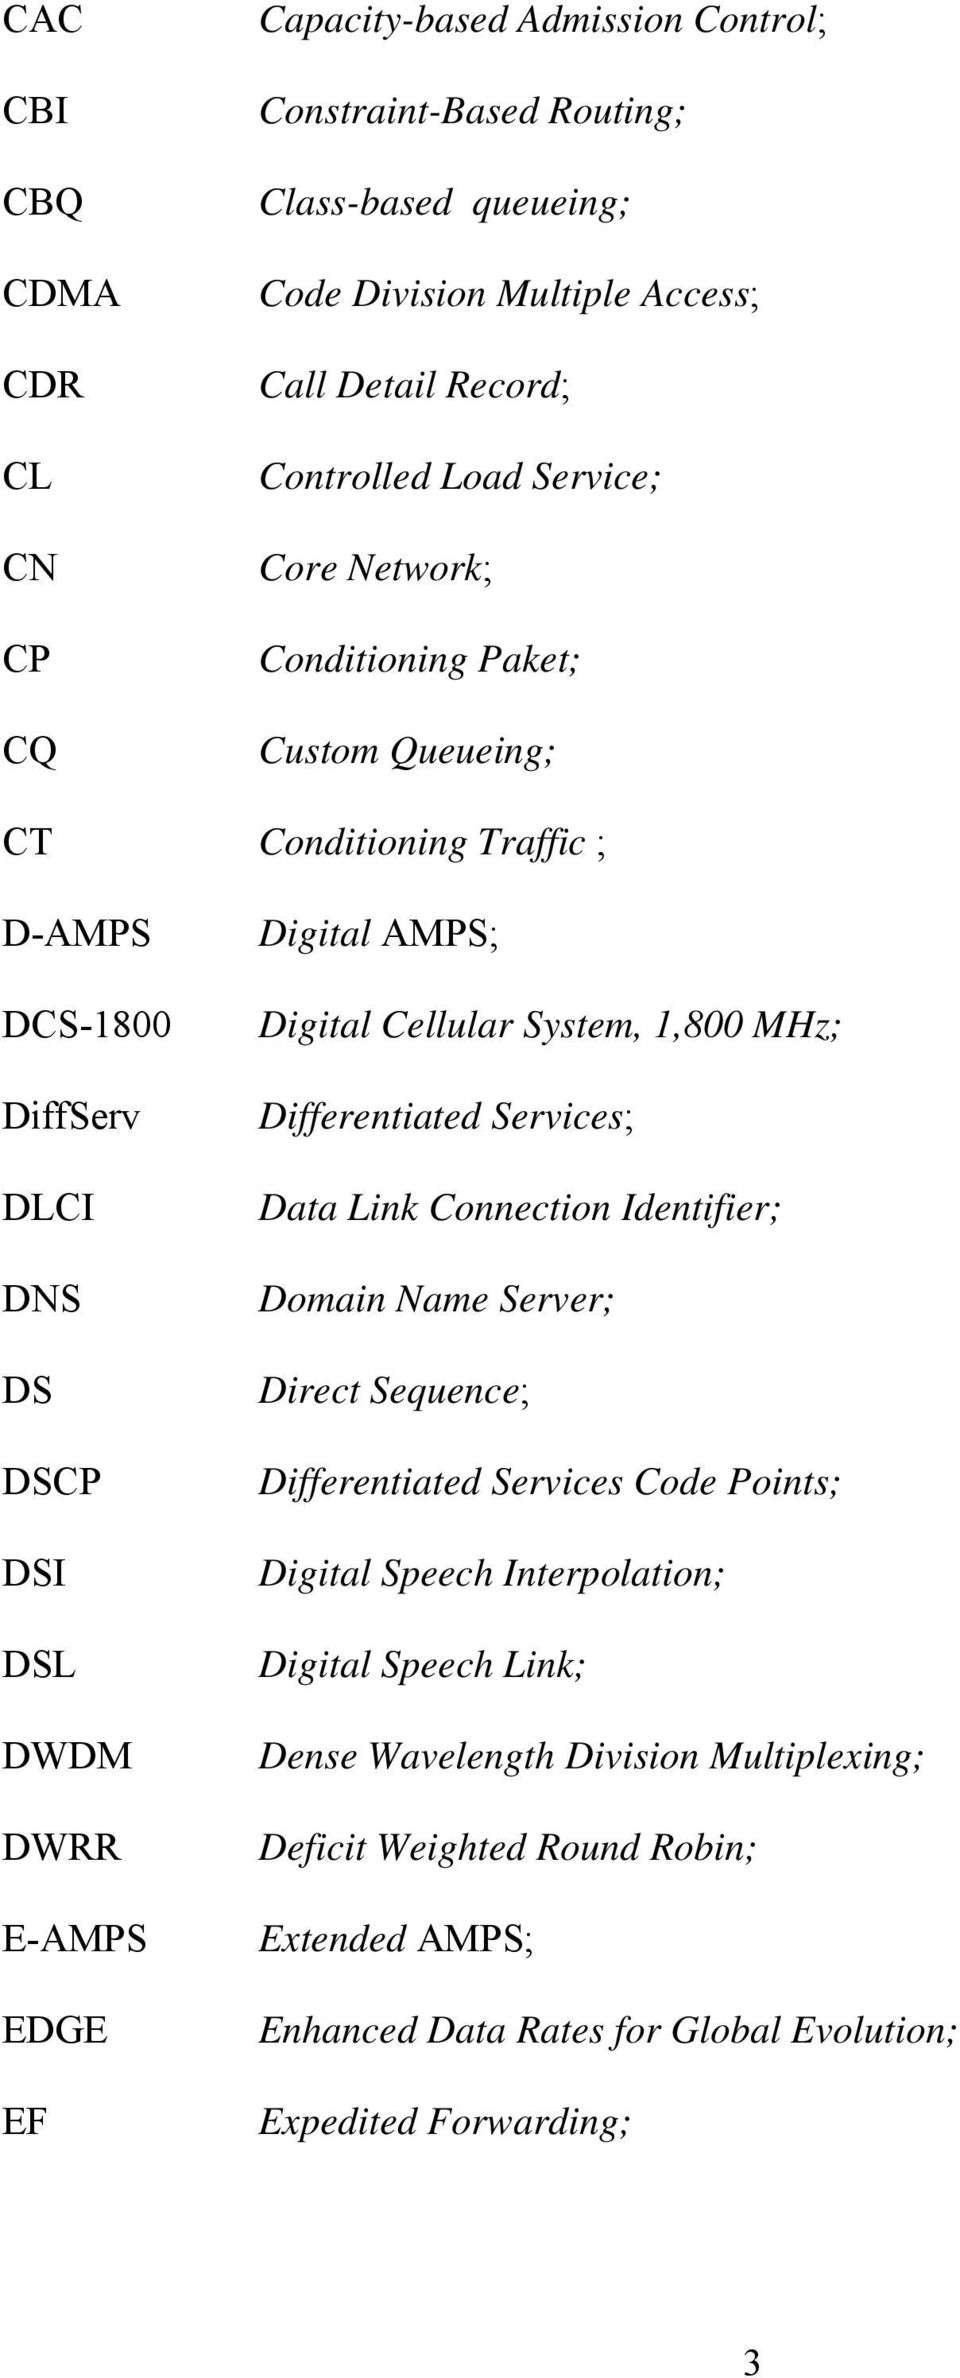 Digital Cellular System, 1,800 MHz; Differentiated Services; Data Link Connection Identifier; Domain Name Server; Direct Sequence; Differentiated Services Code Points; Digital